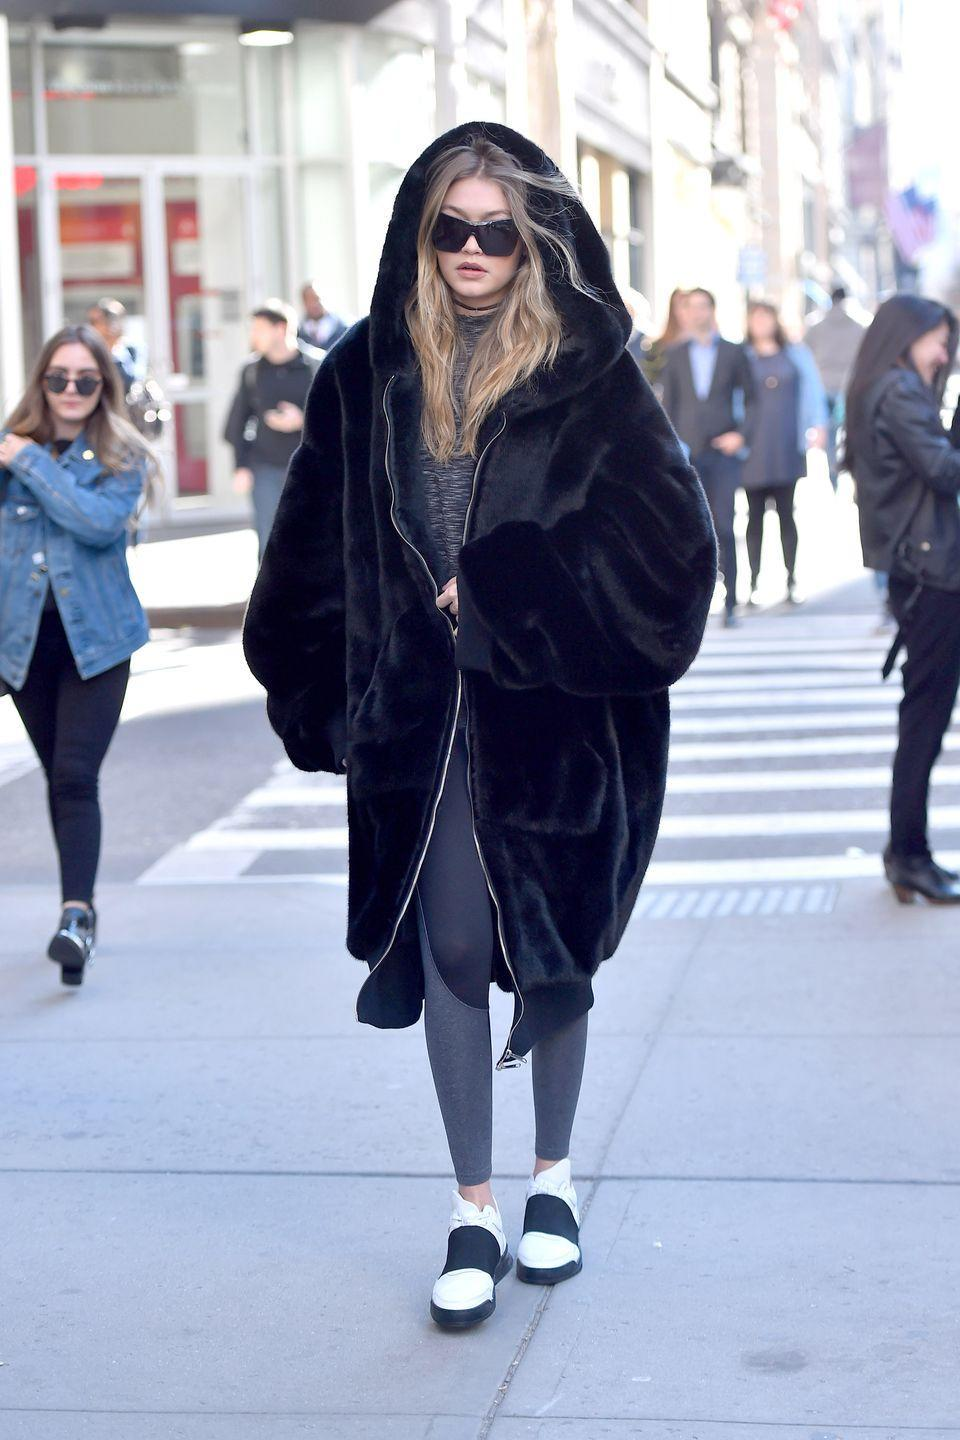 <p>Hadid looked cozy hitting the streets of New York, topping her black + white athleisure look with an oversized furry coat. </p>